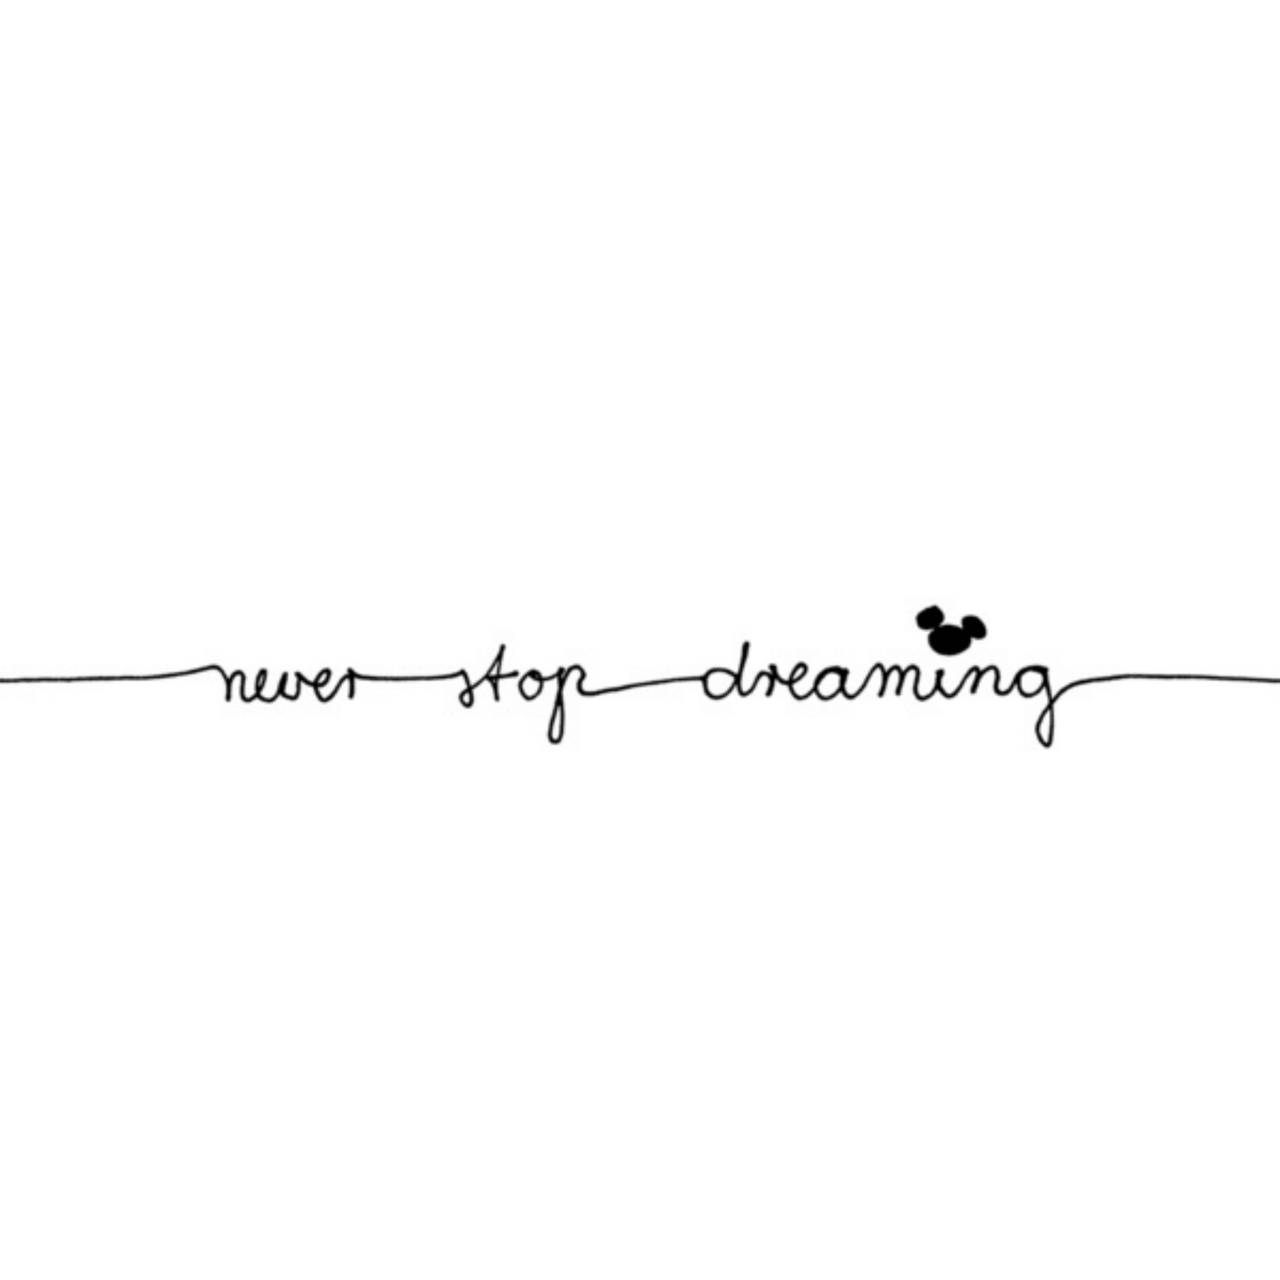 Never Stop Dreaming Wallpaper By Tim2alex C3 Free On Zedge